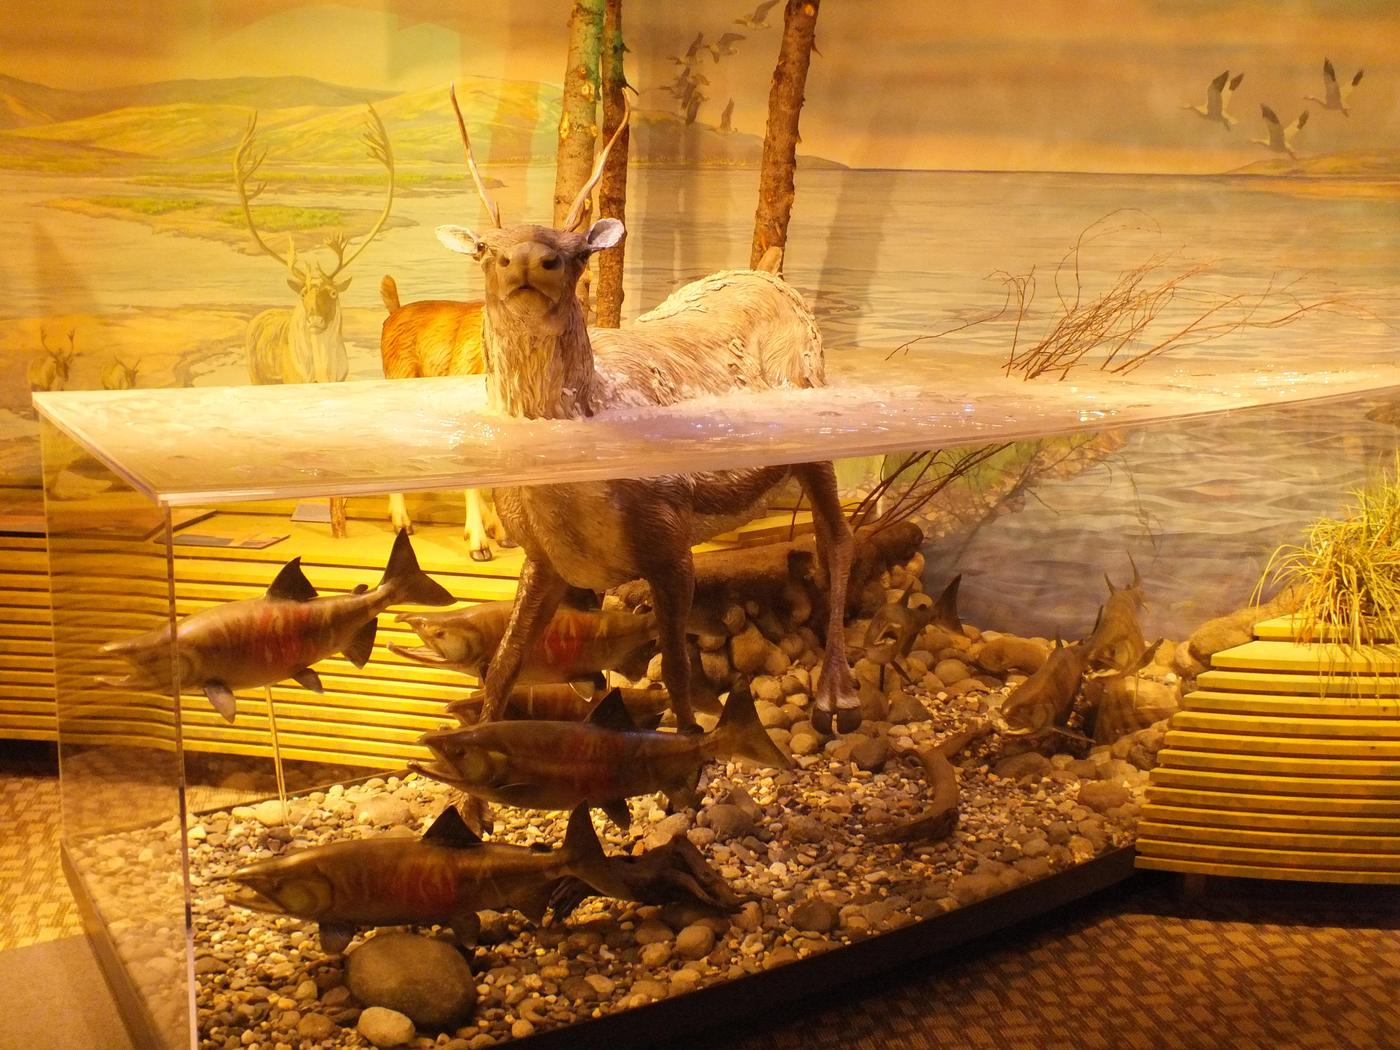 Museum displaysThe museum displays include natural and cultural displays